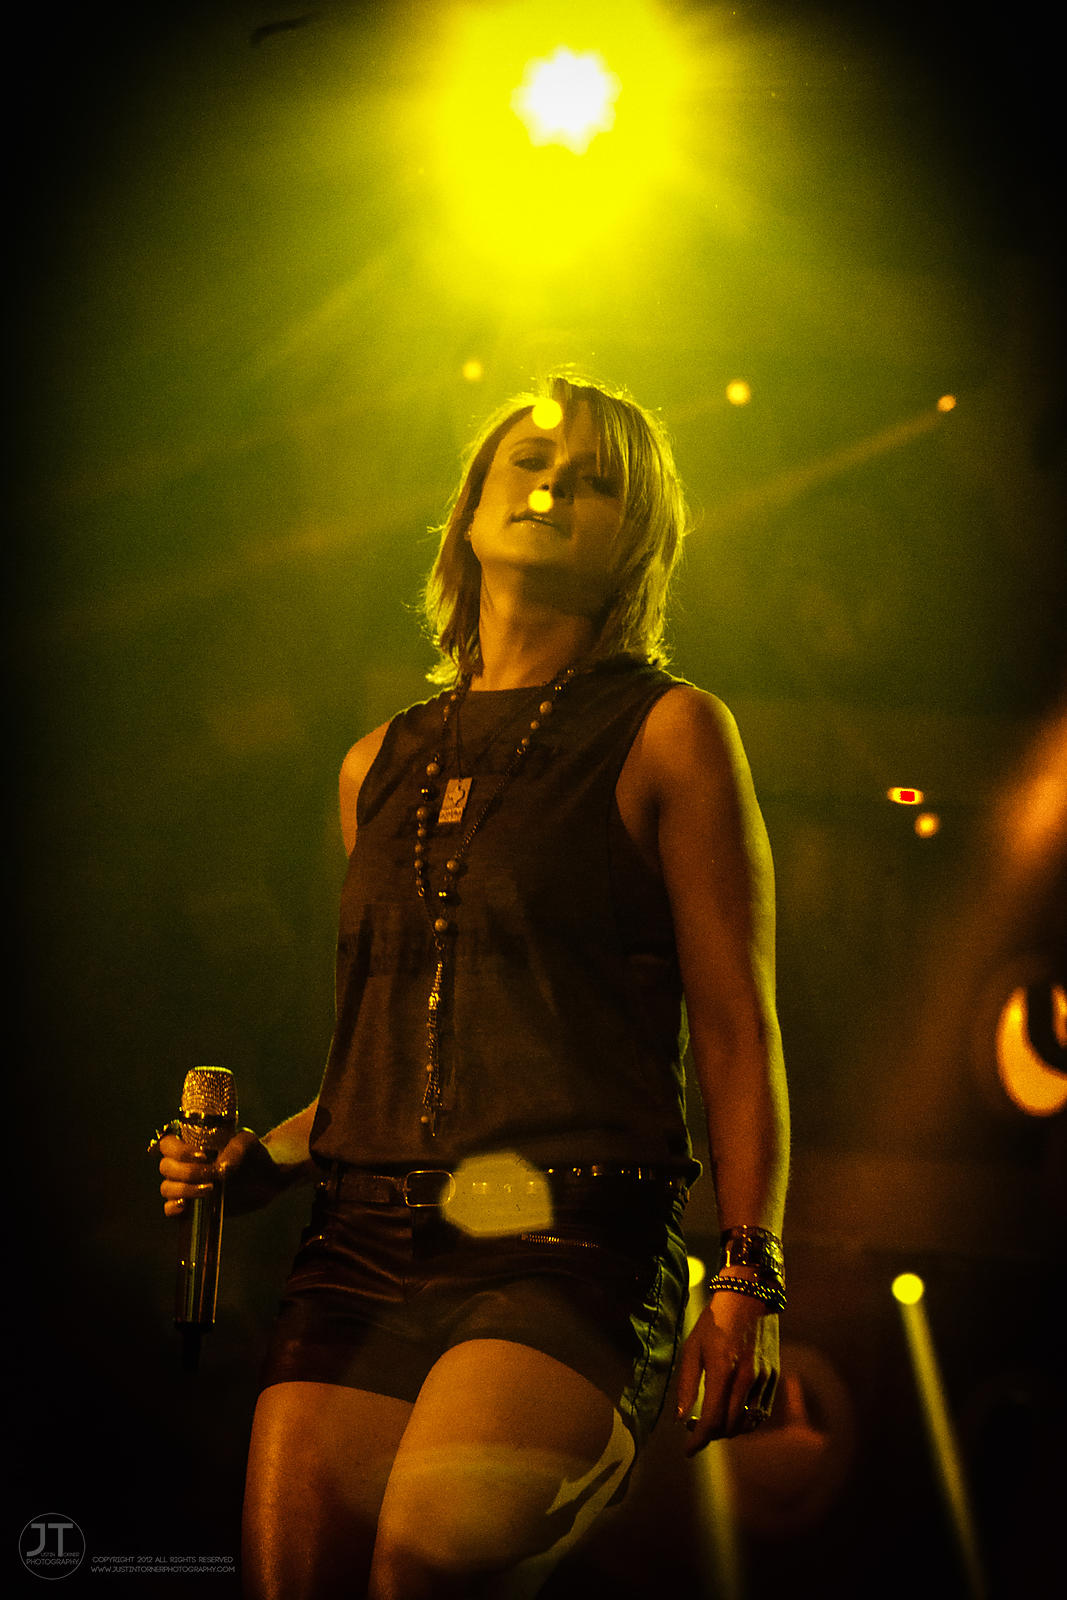 Hoopla - Miranda Lambert, US Cellular Center, March 14, 2015 photos